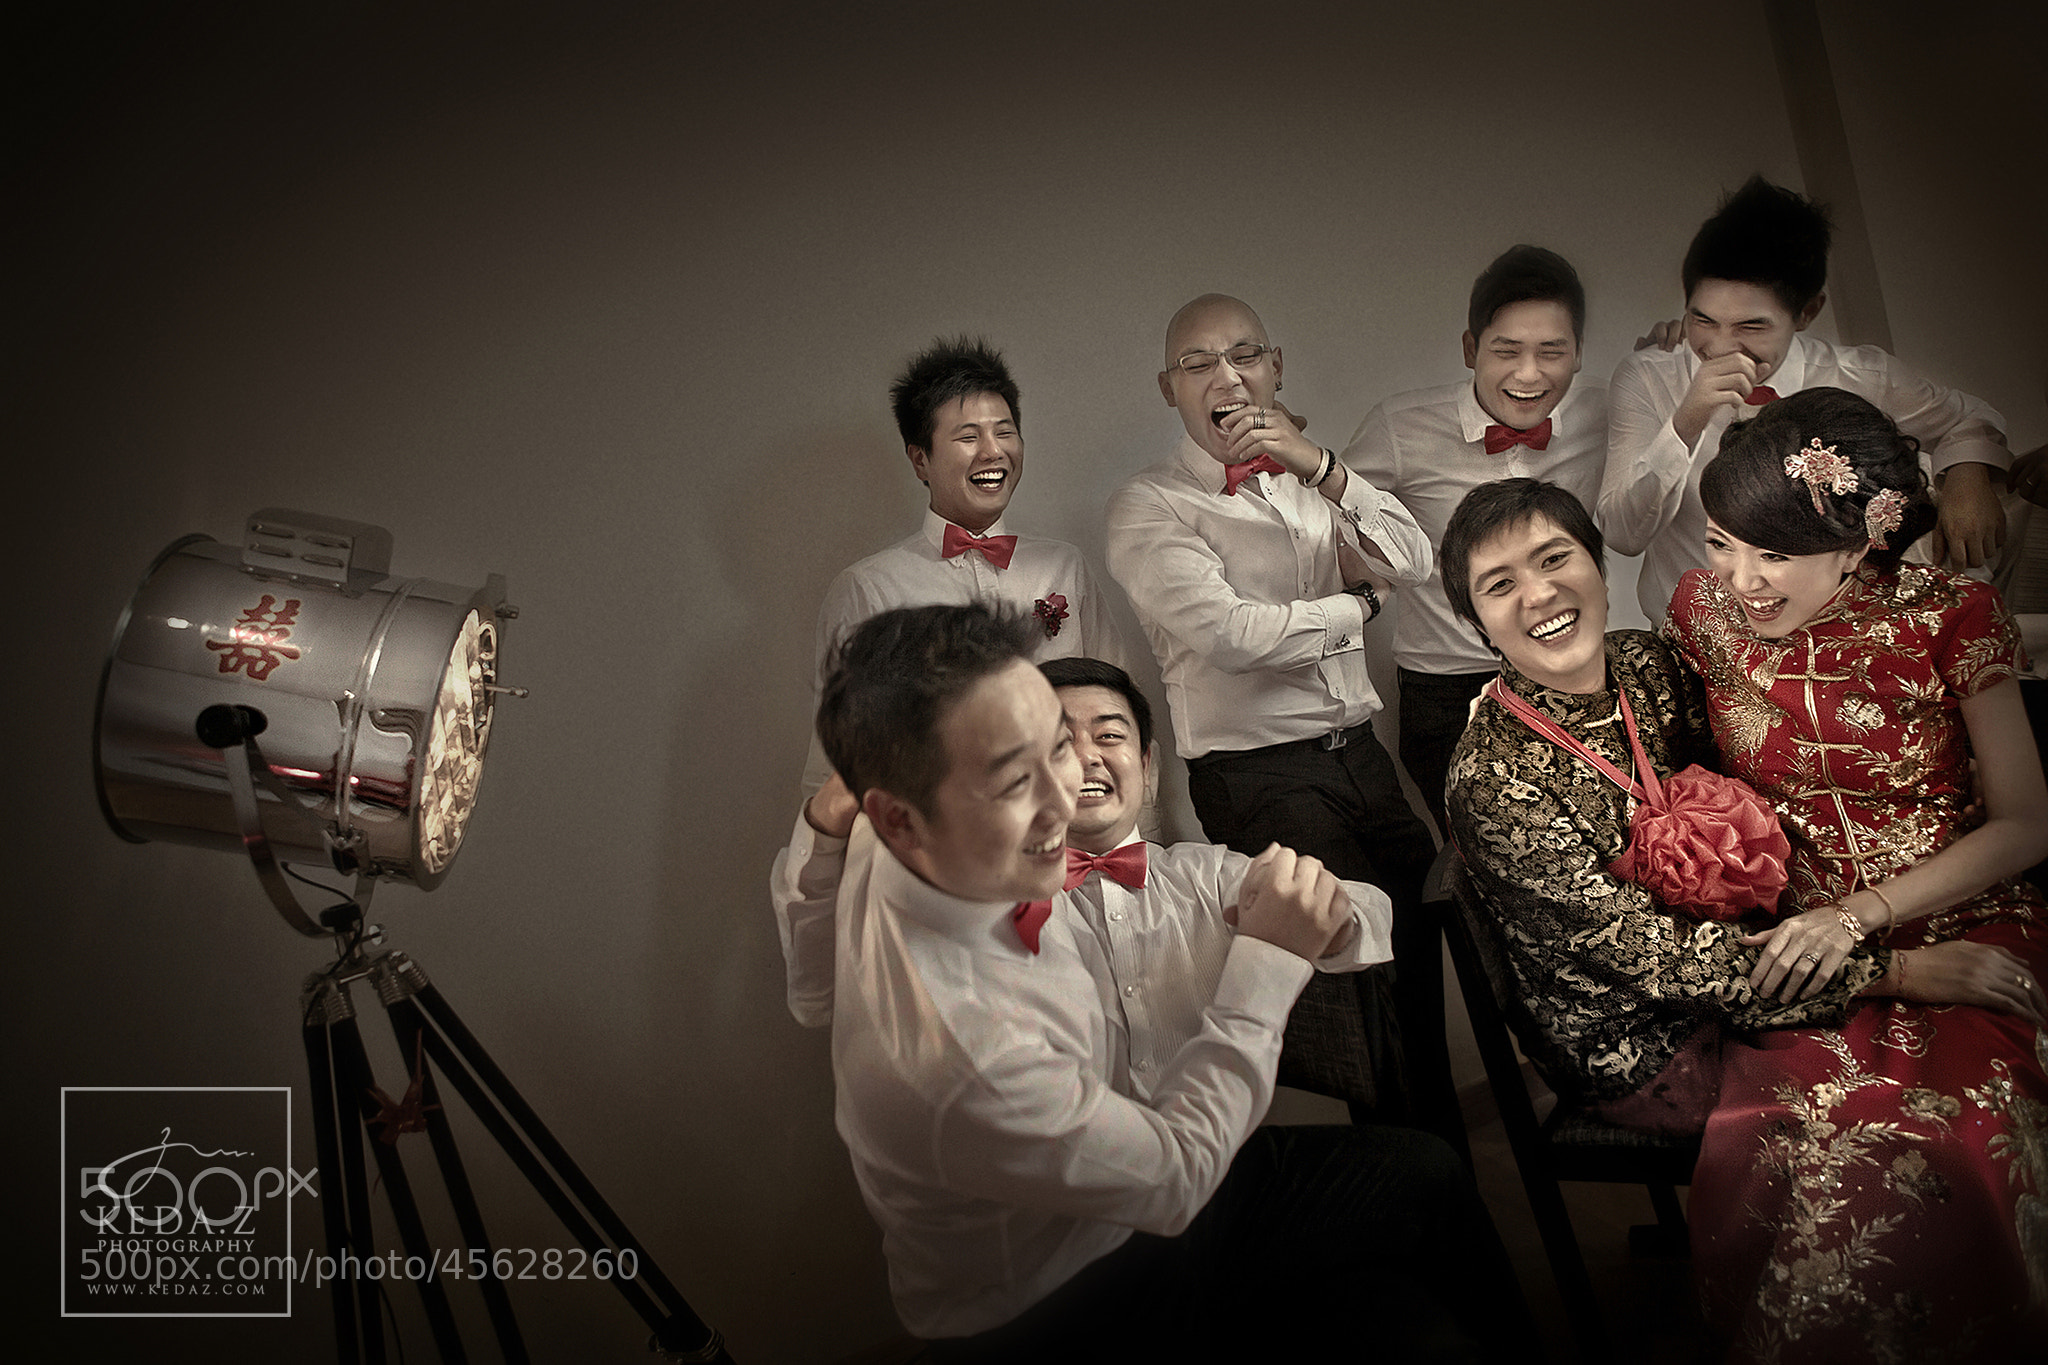 Photograph Fun Wedding by Keda.Z Feng on 500px